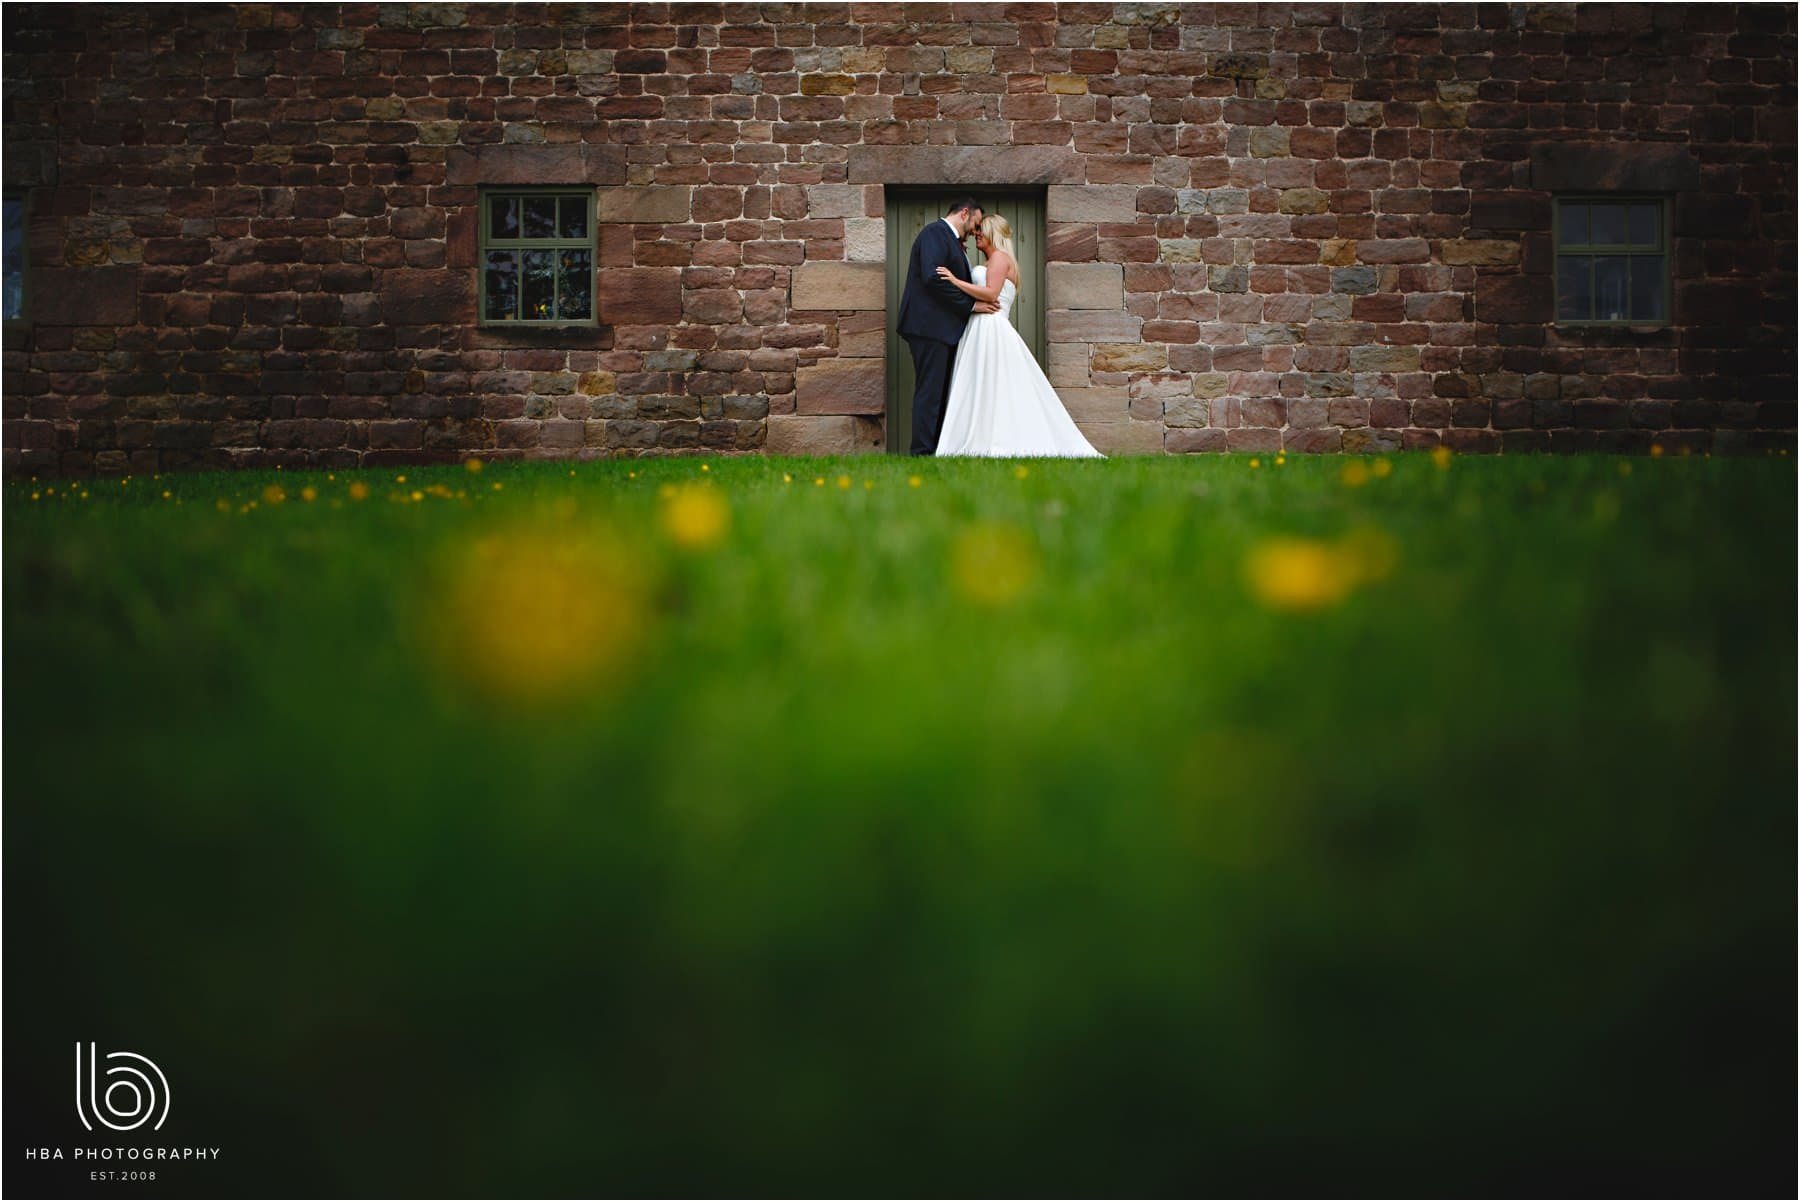 the bride & groom in the buttercups